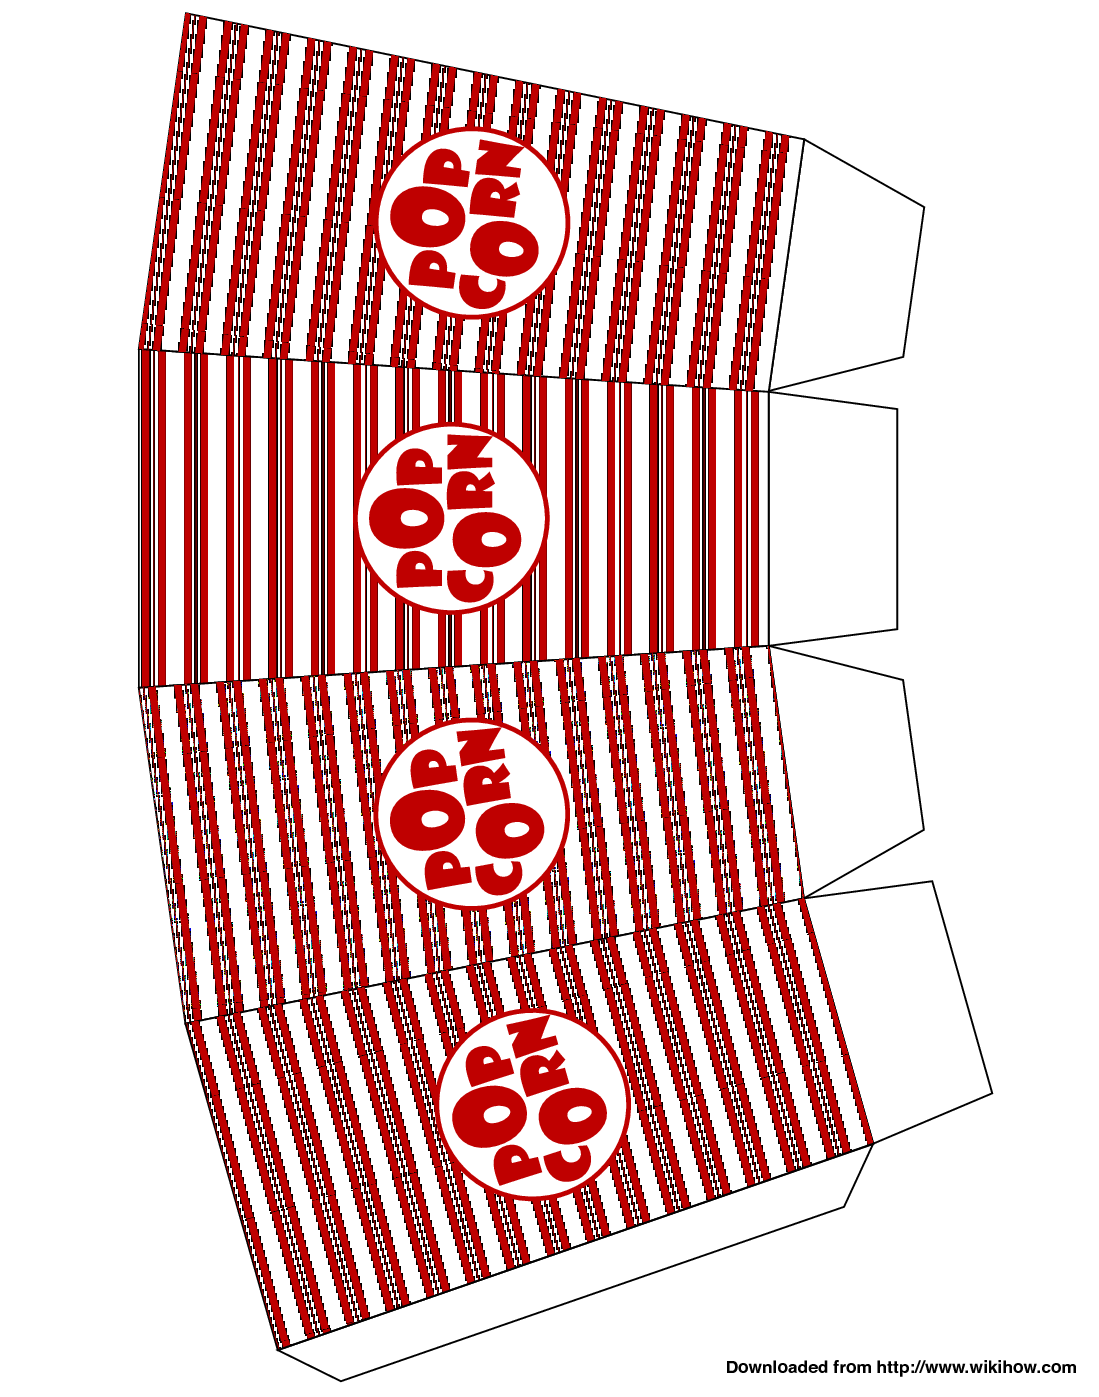 photograph regarding Printable Popcorn Template named Printable Popcorn Box Template Clipart Panda - Cost-free